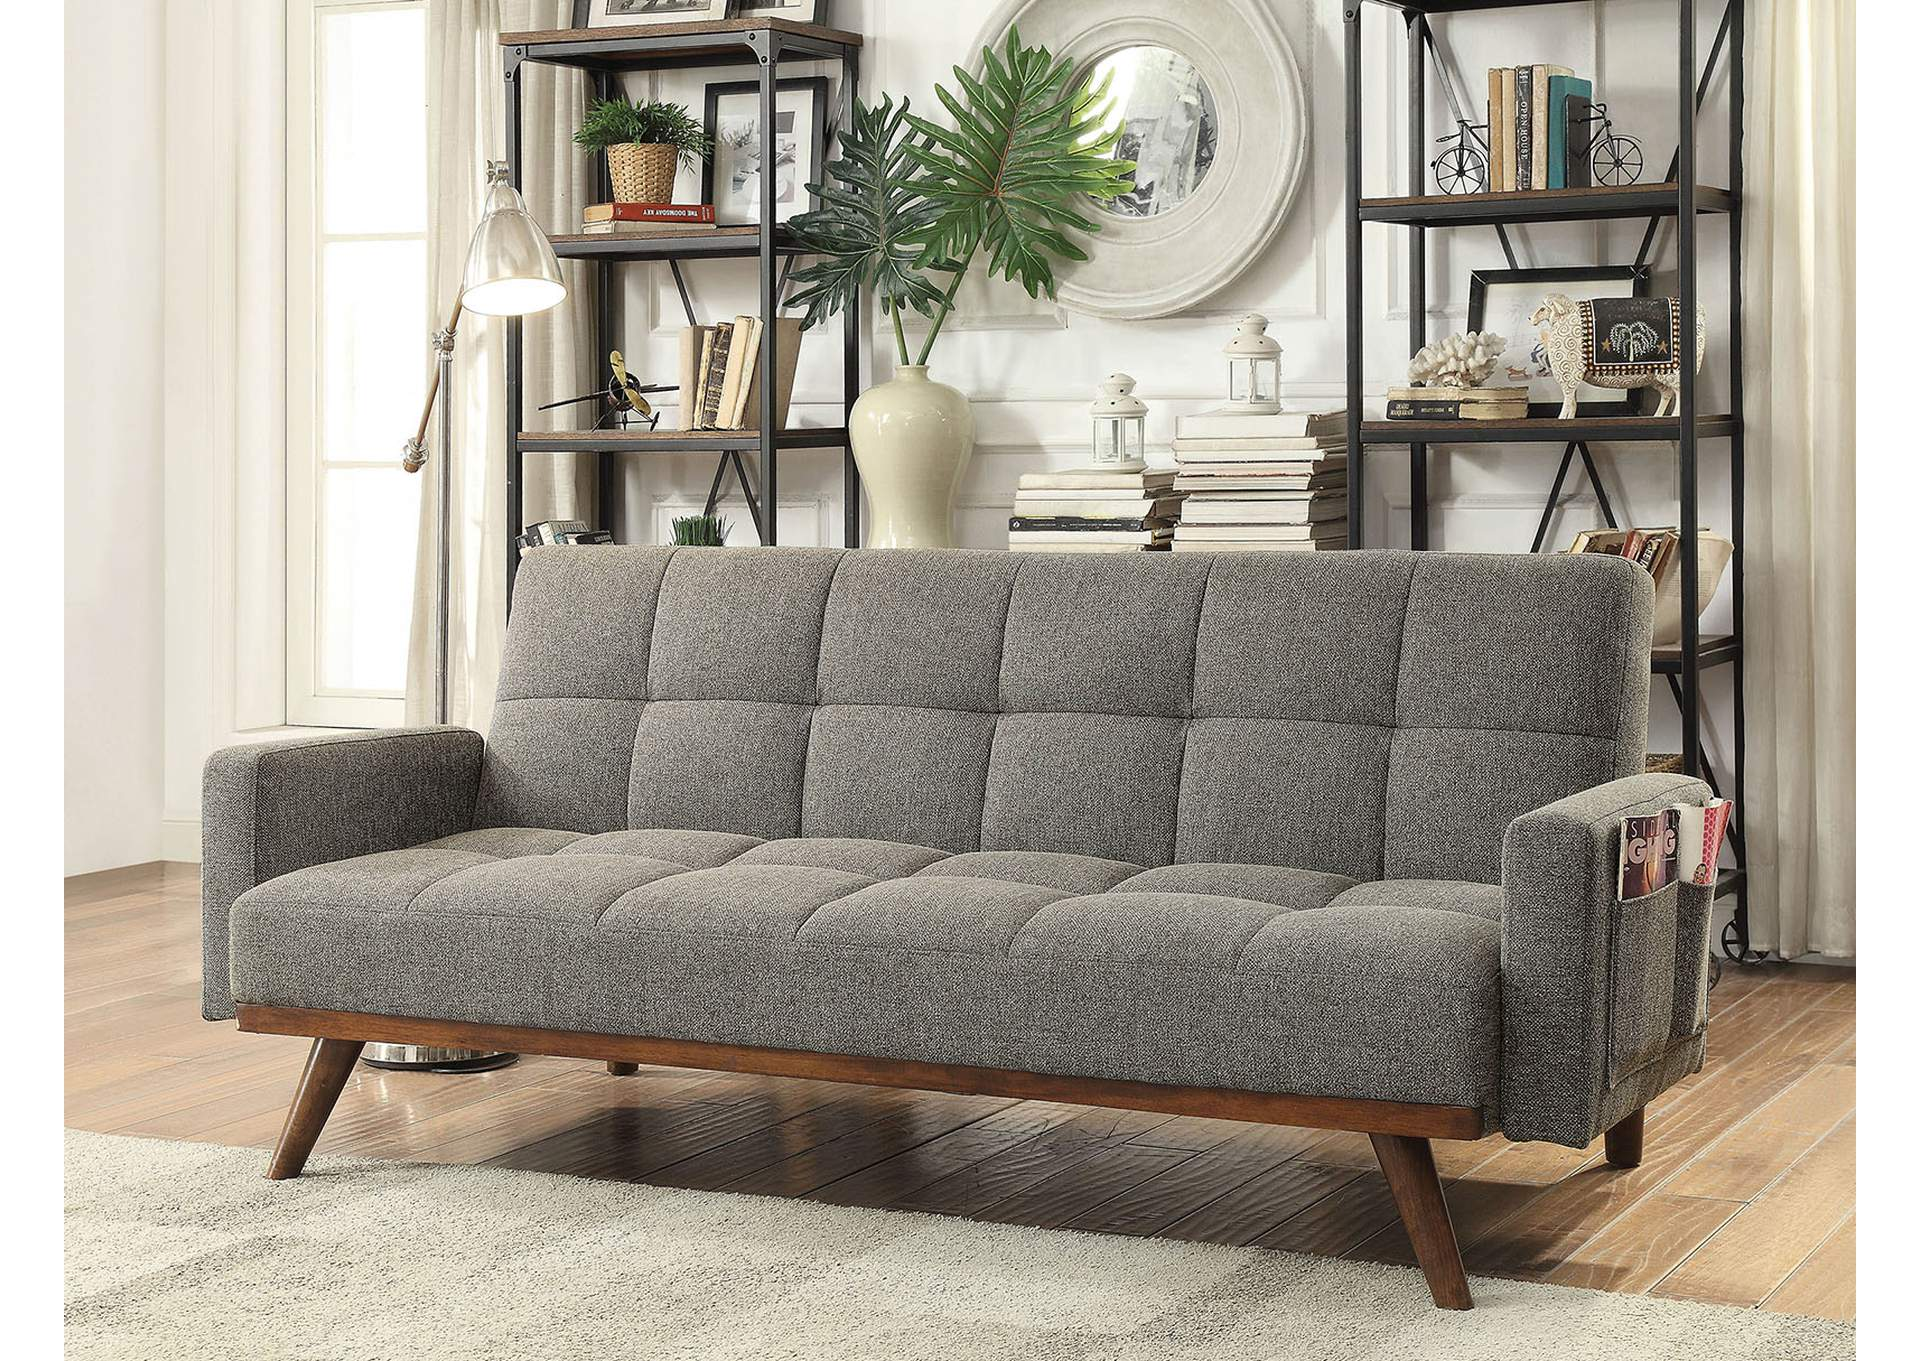 Nettie Futon Sofa,Furniture of America TX